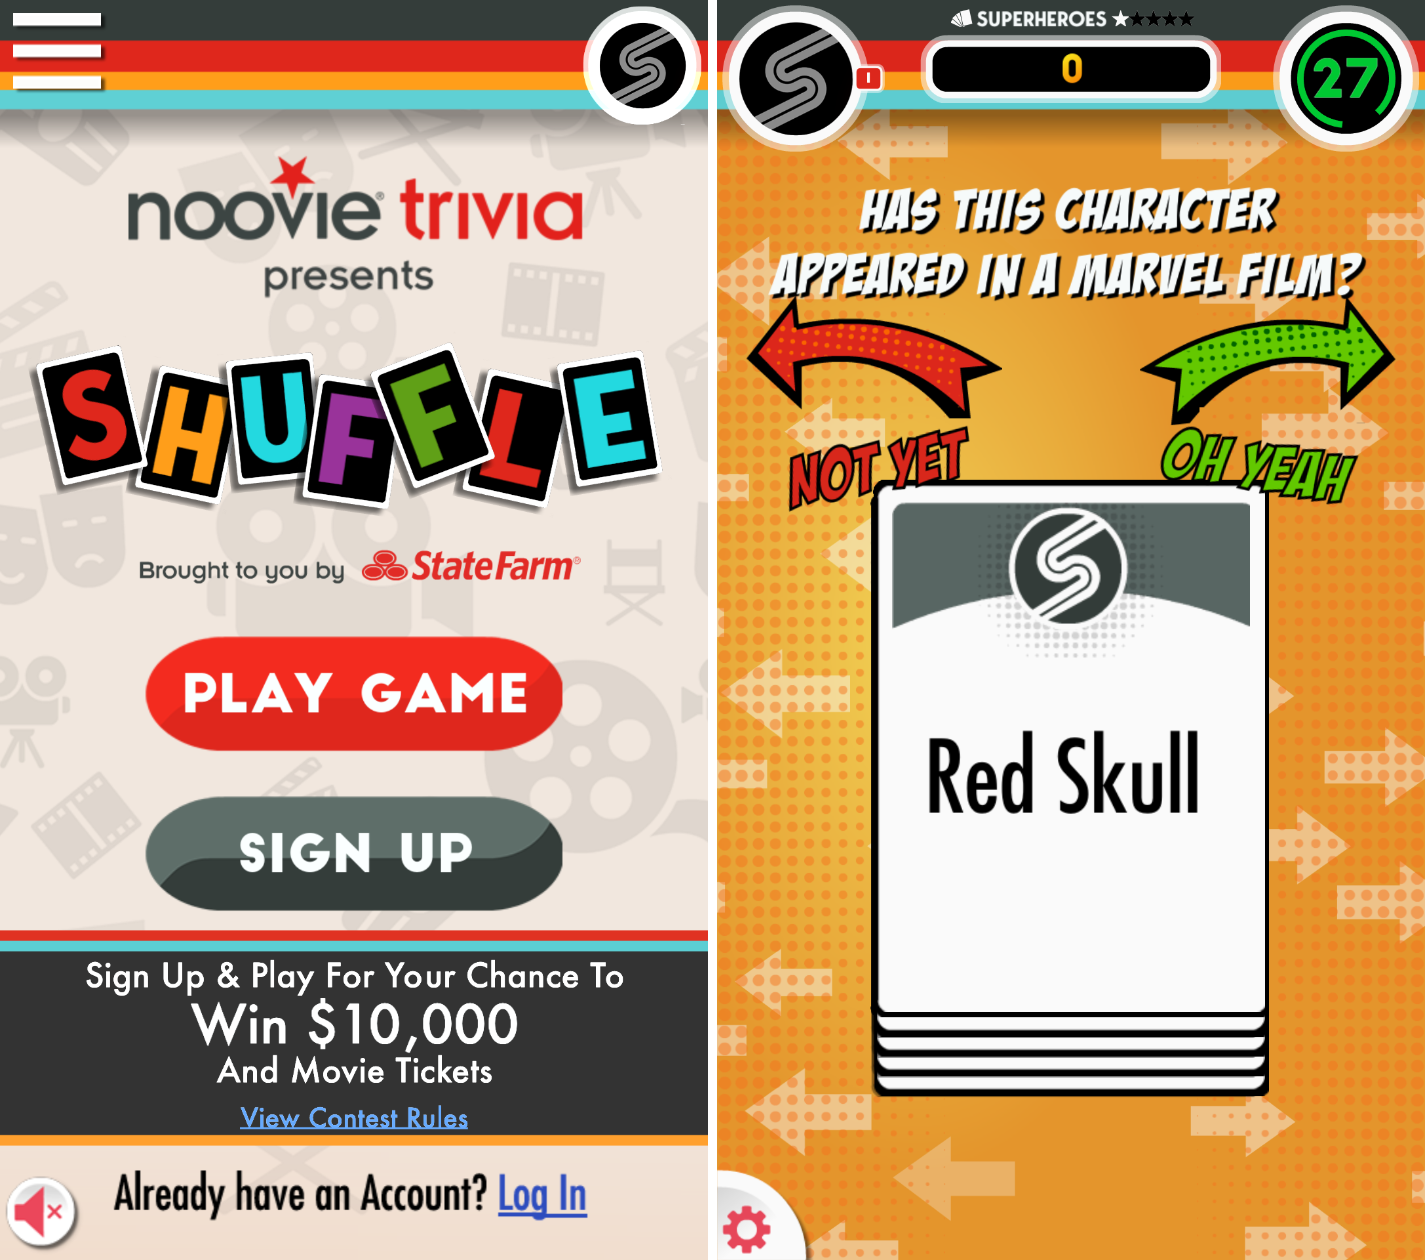 Phaser - News - Noovie Trivia Shuffle: Test your Movie IQ in this